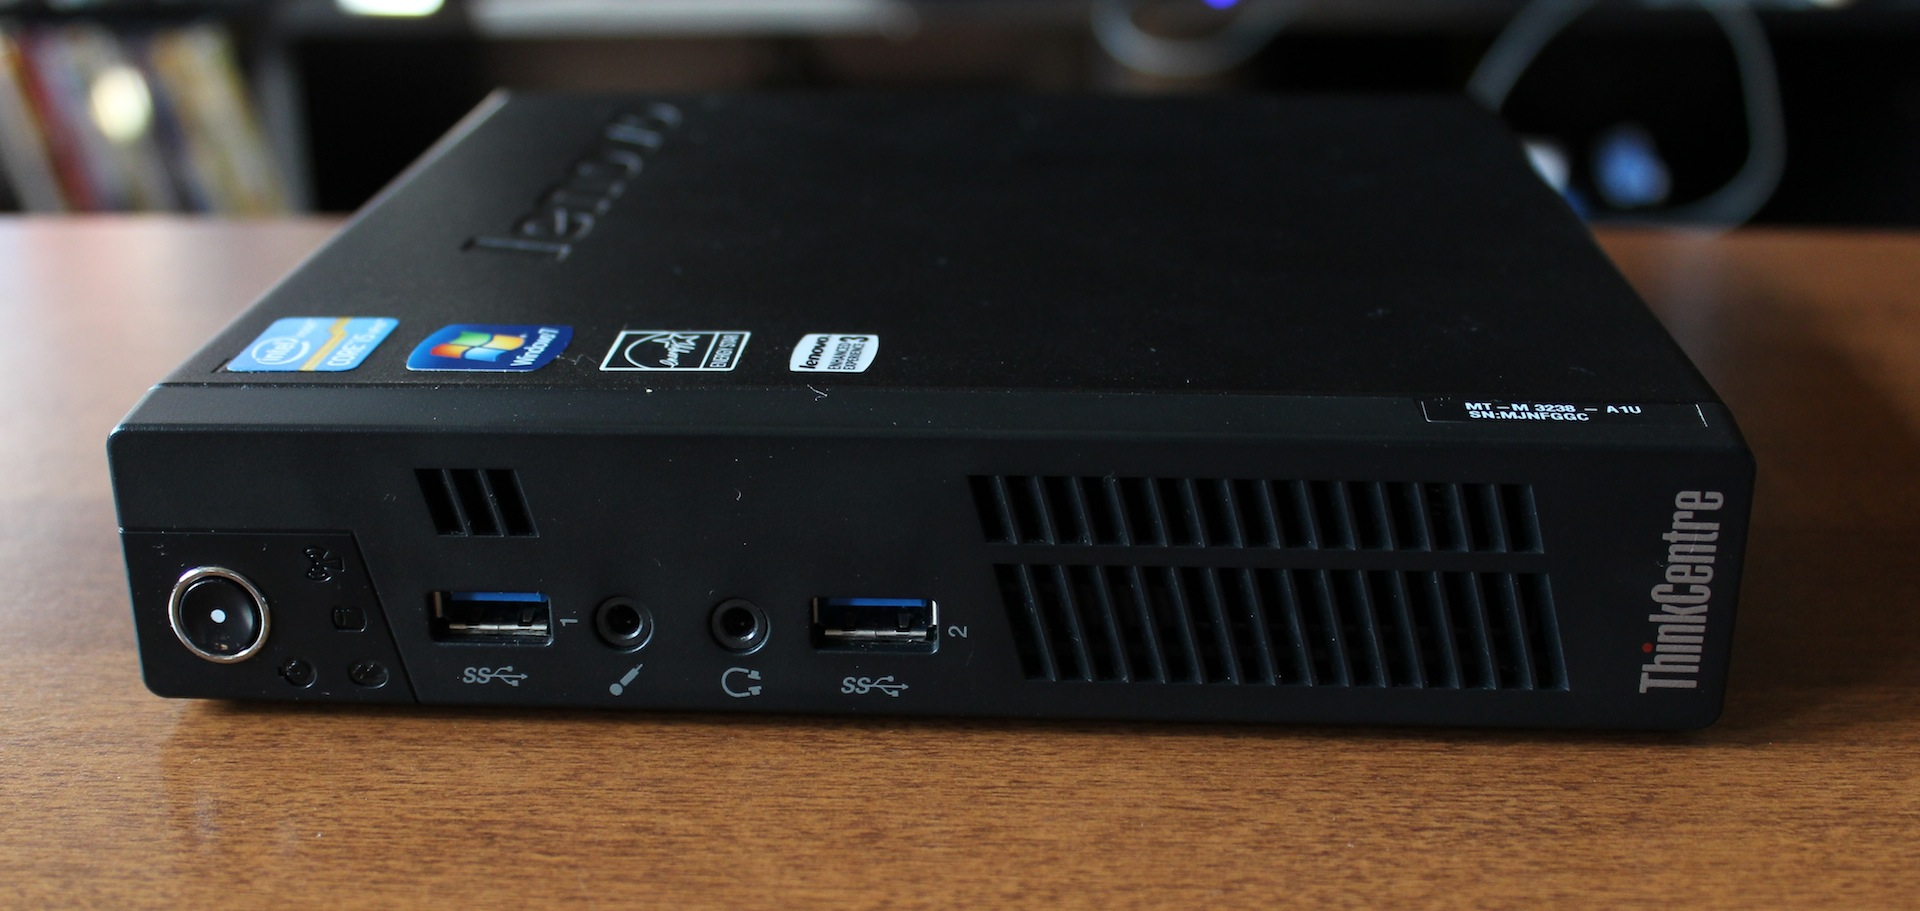 On the front of the M92p: a power button, activity lights, two USB 3.0 ports, and audio jacks.